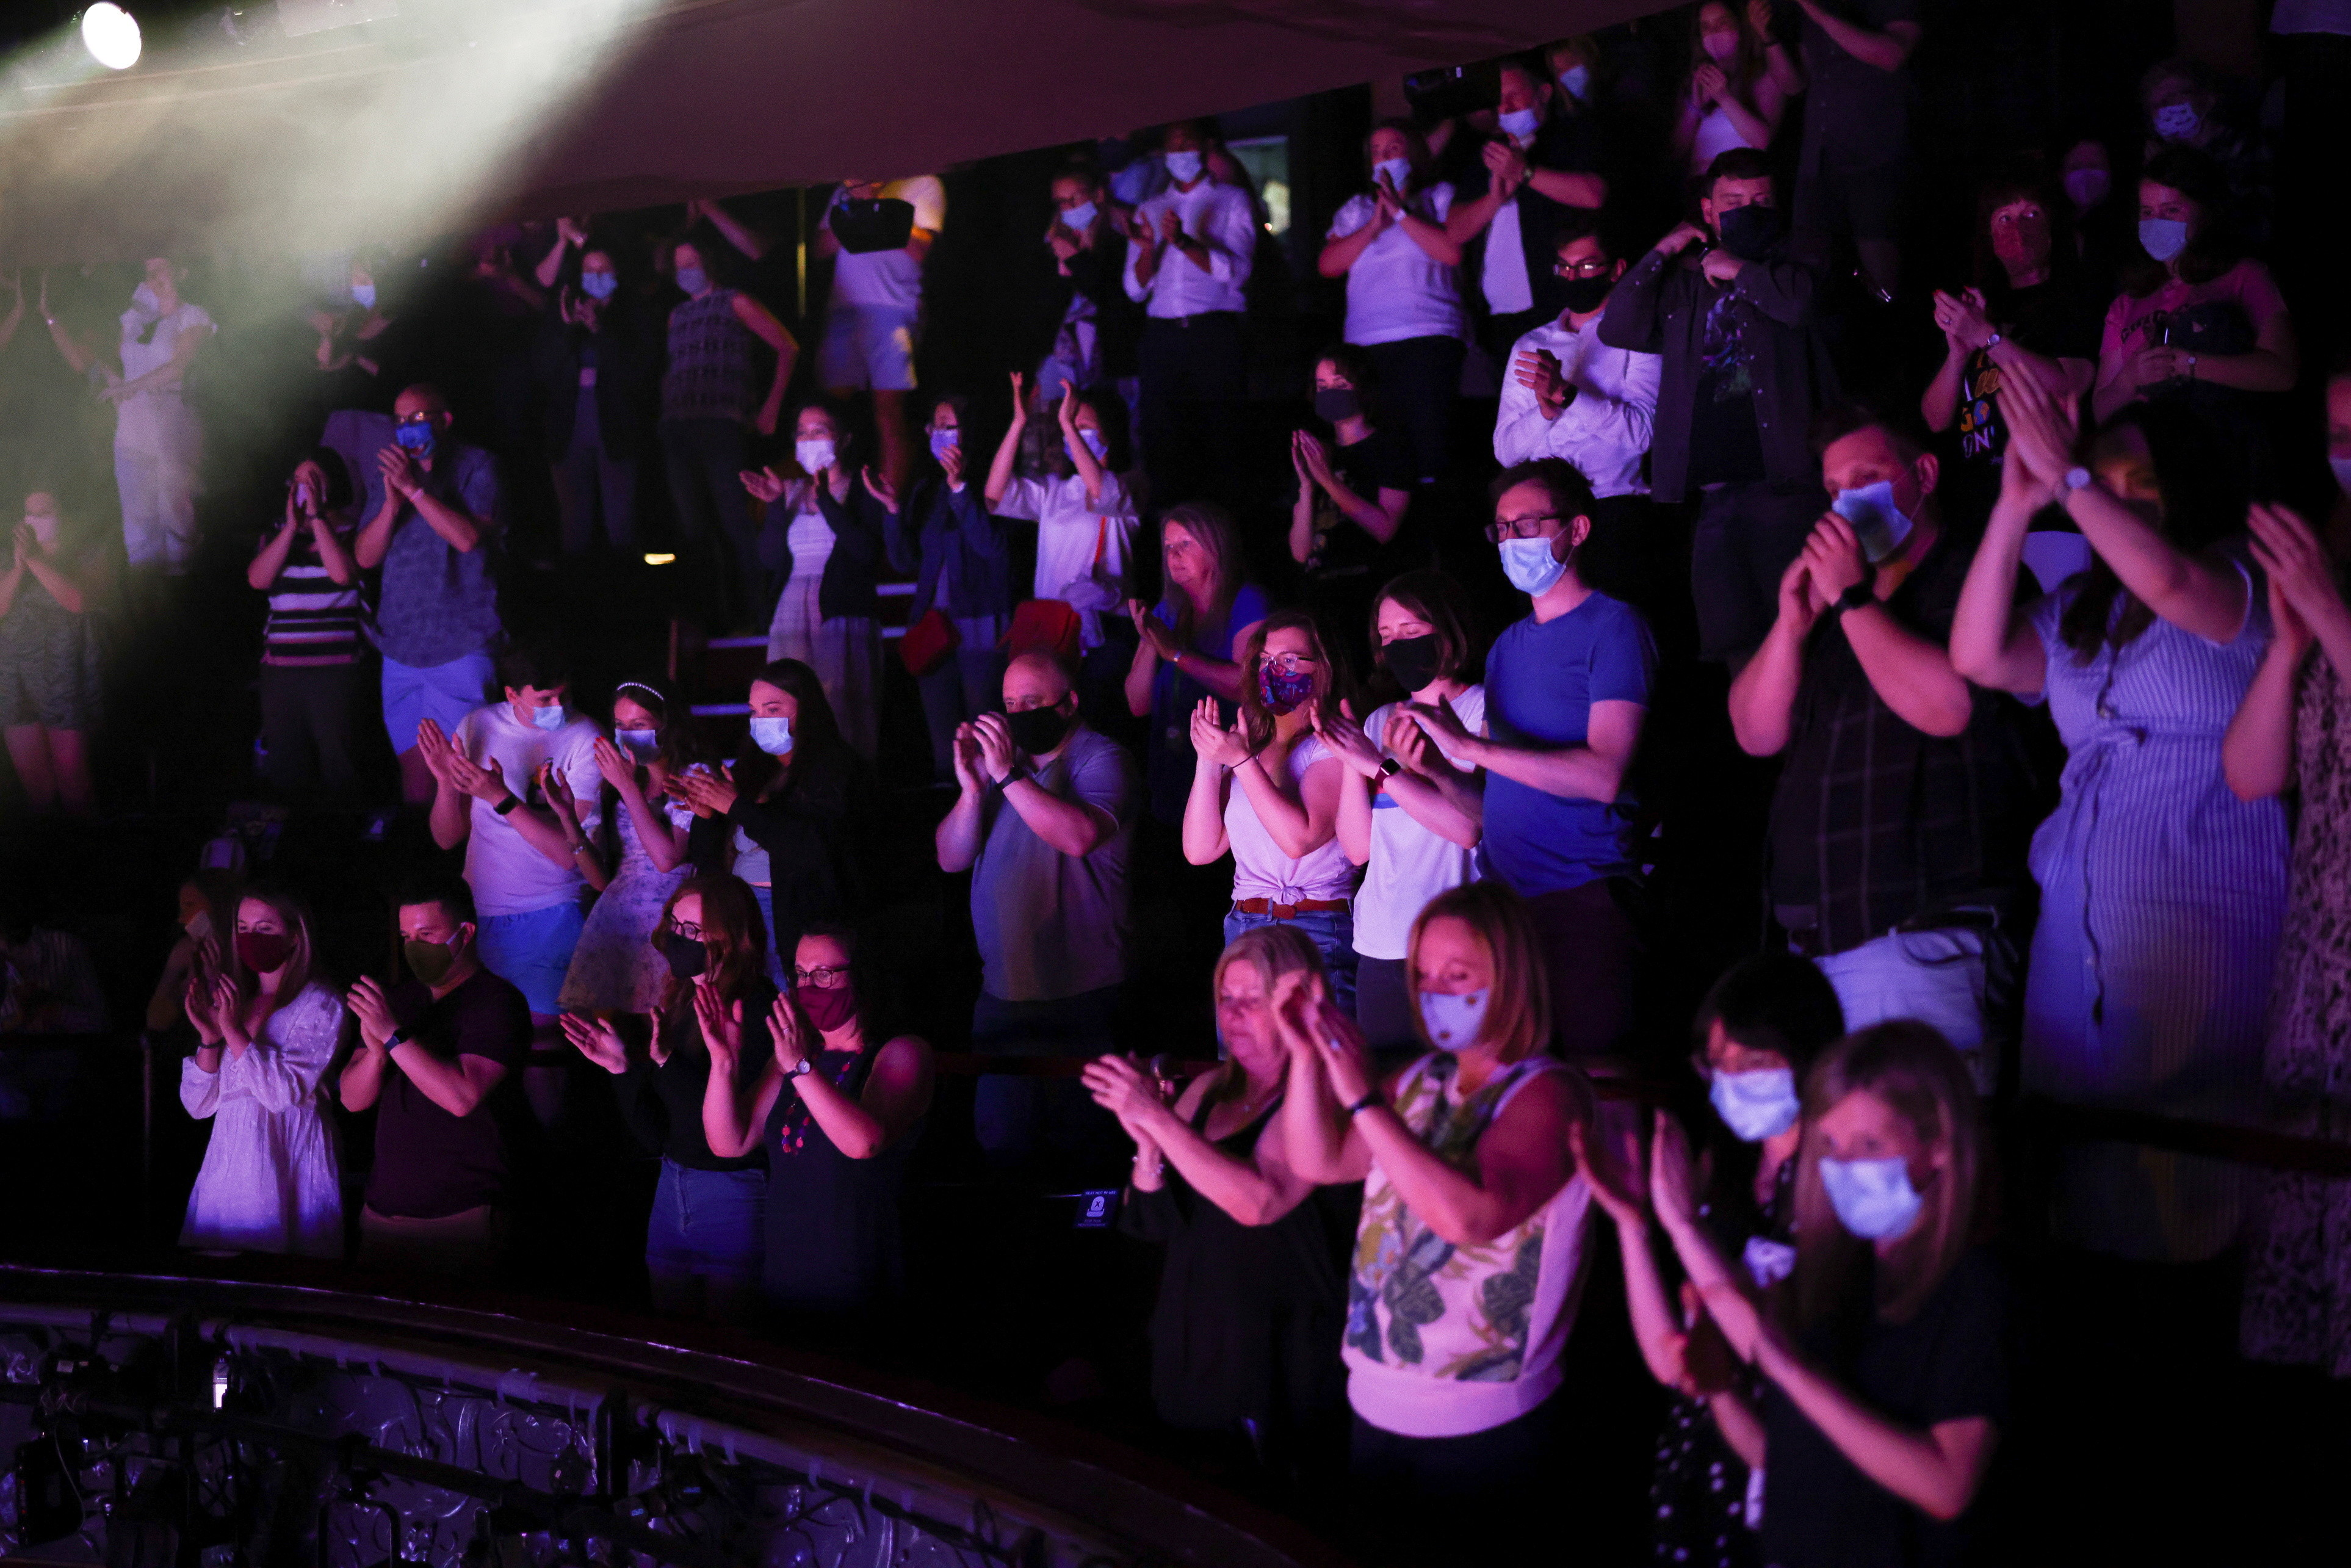 Guests applaud at the end of a performance of the West End show 'The Show Must Go On' at the Palace Theatre, amid the spread of coronavirus disease (COVID-19) in London, Britain, June 2, 2021. REUTERS/Henry Nicholls - RC2LSN9R713Q